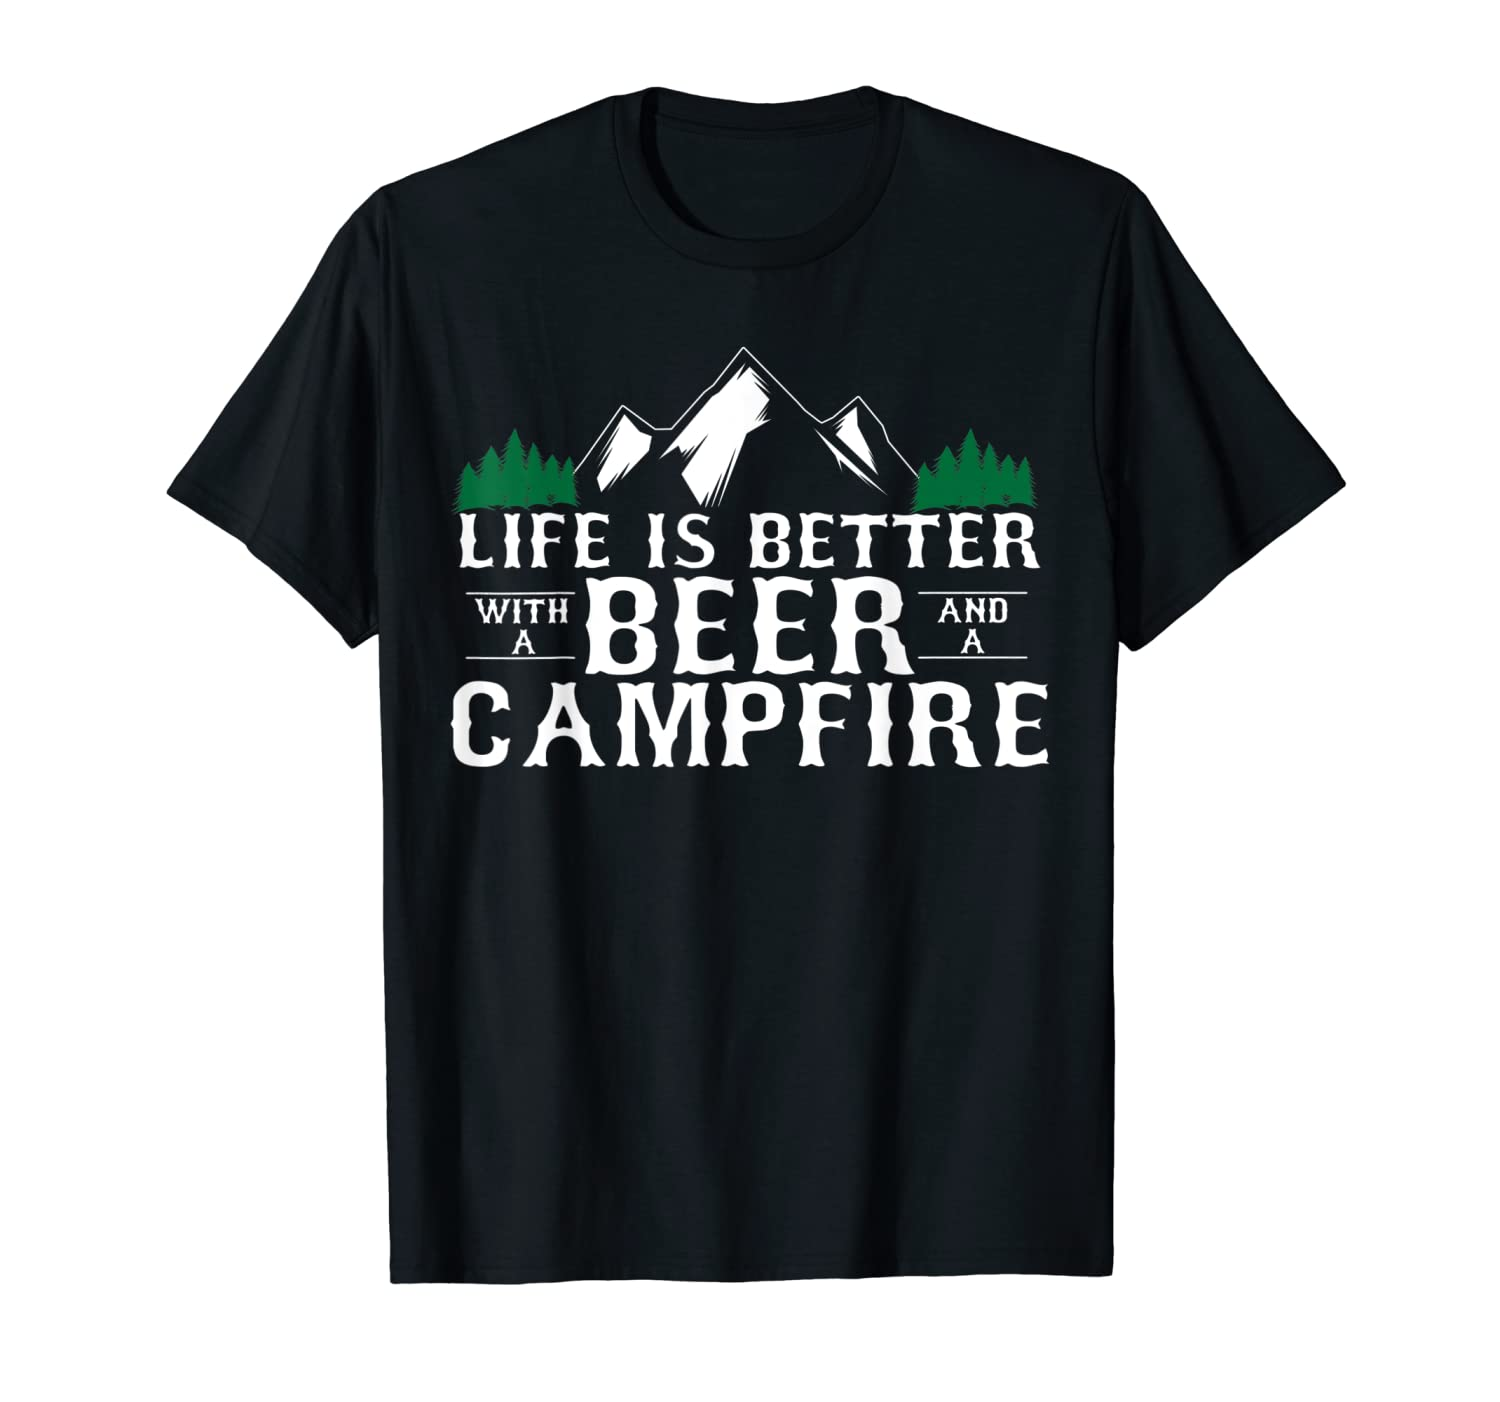 9654674b Amazon.com: Funny Camping with a Beer Tshirt - Campfire Life: Clothing